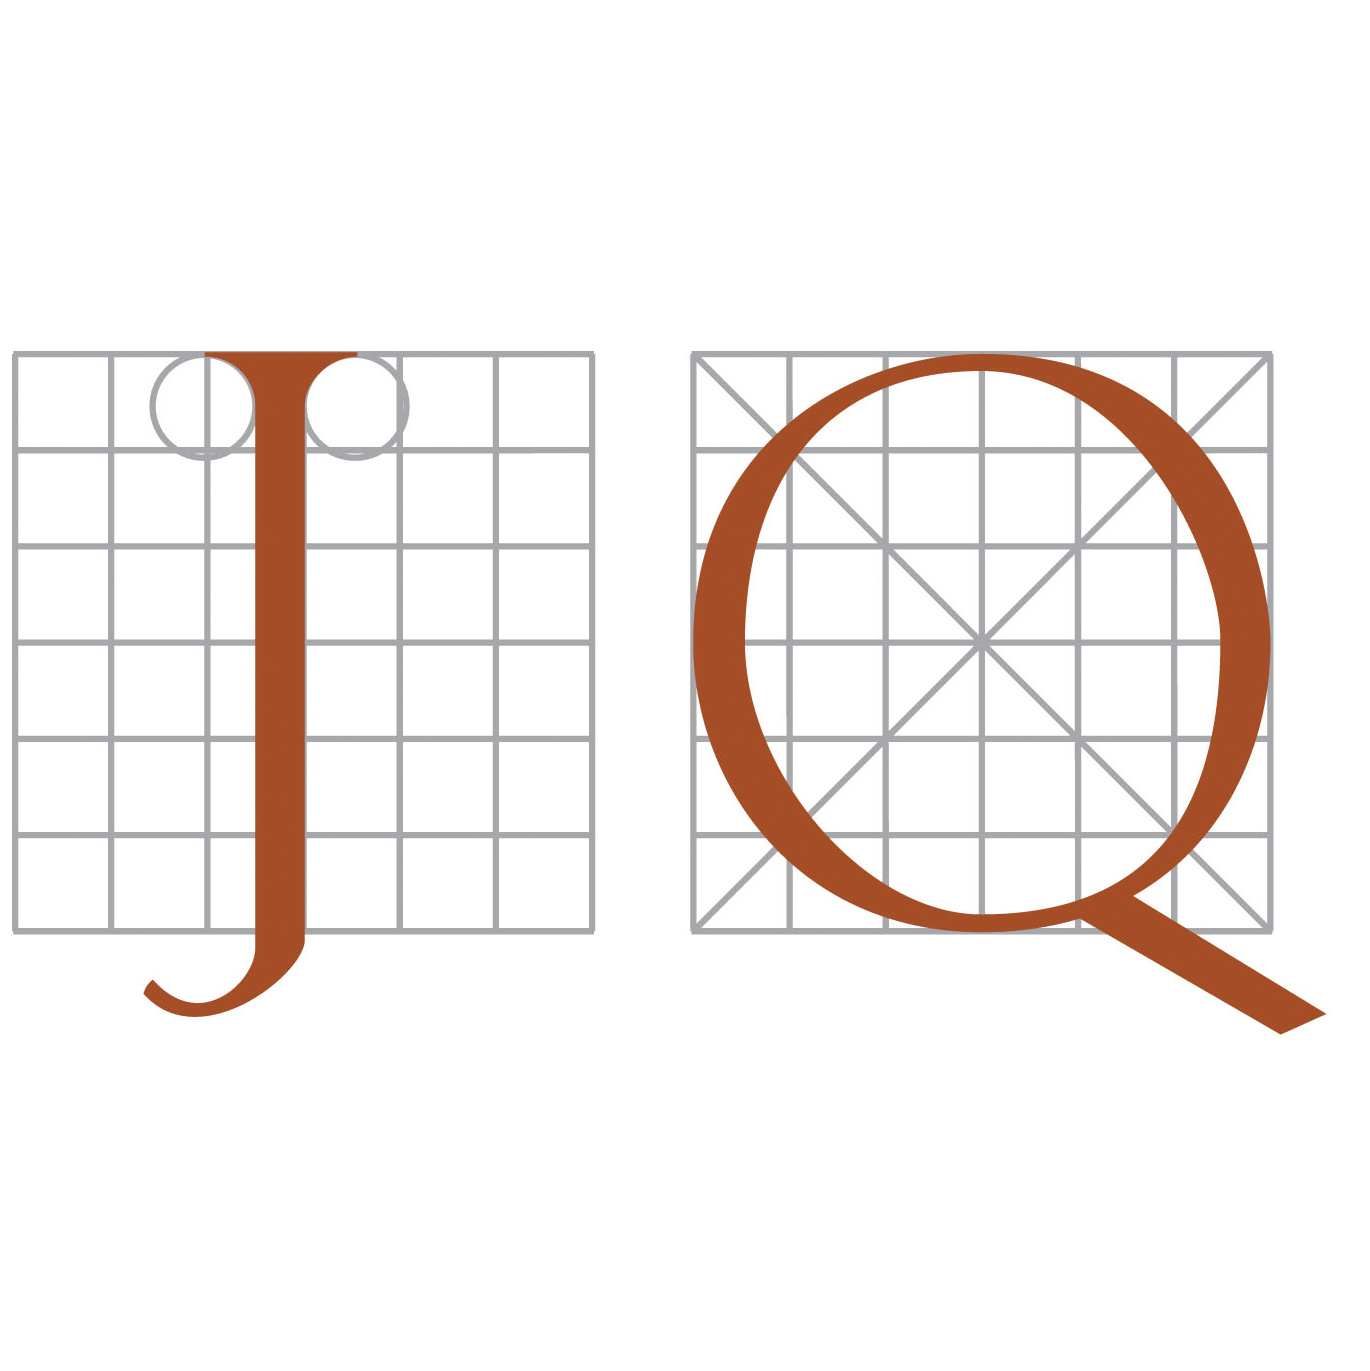 jq_logo_hi_res_no_tag copy